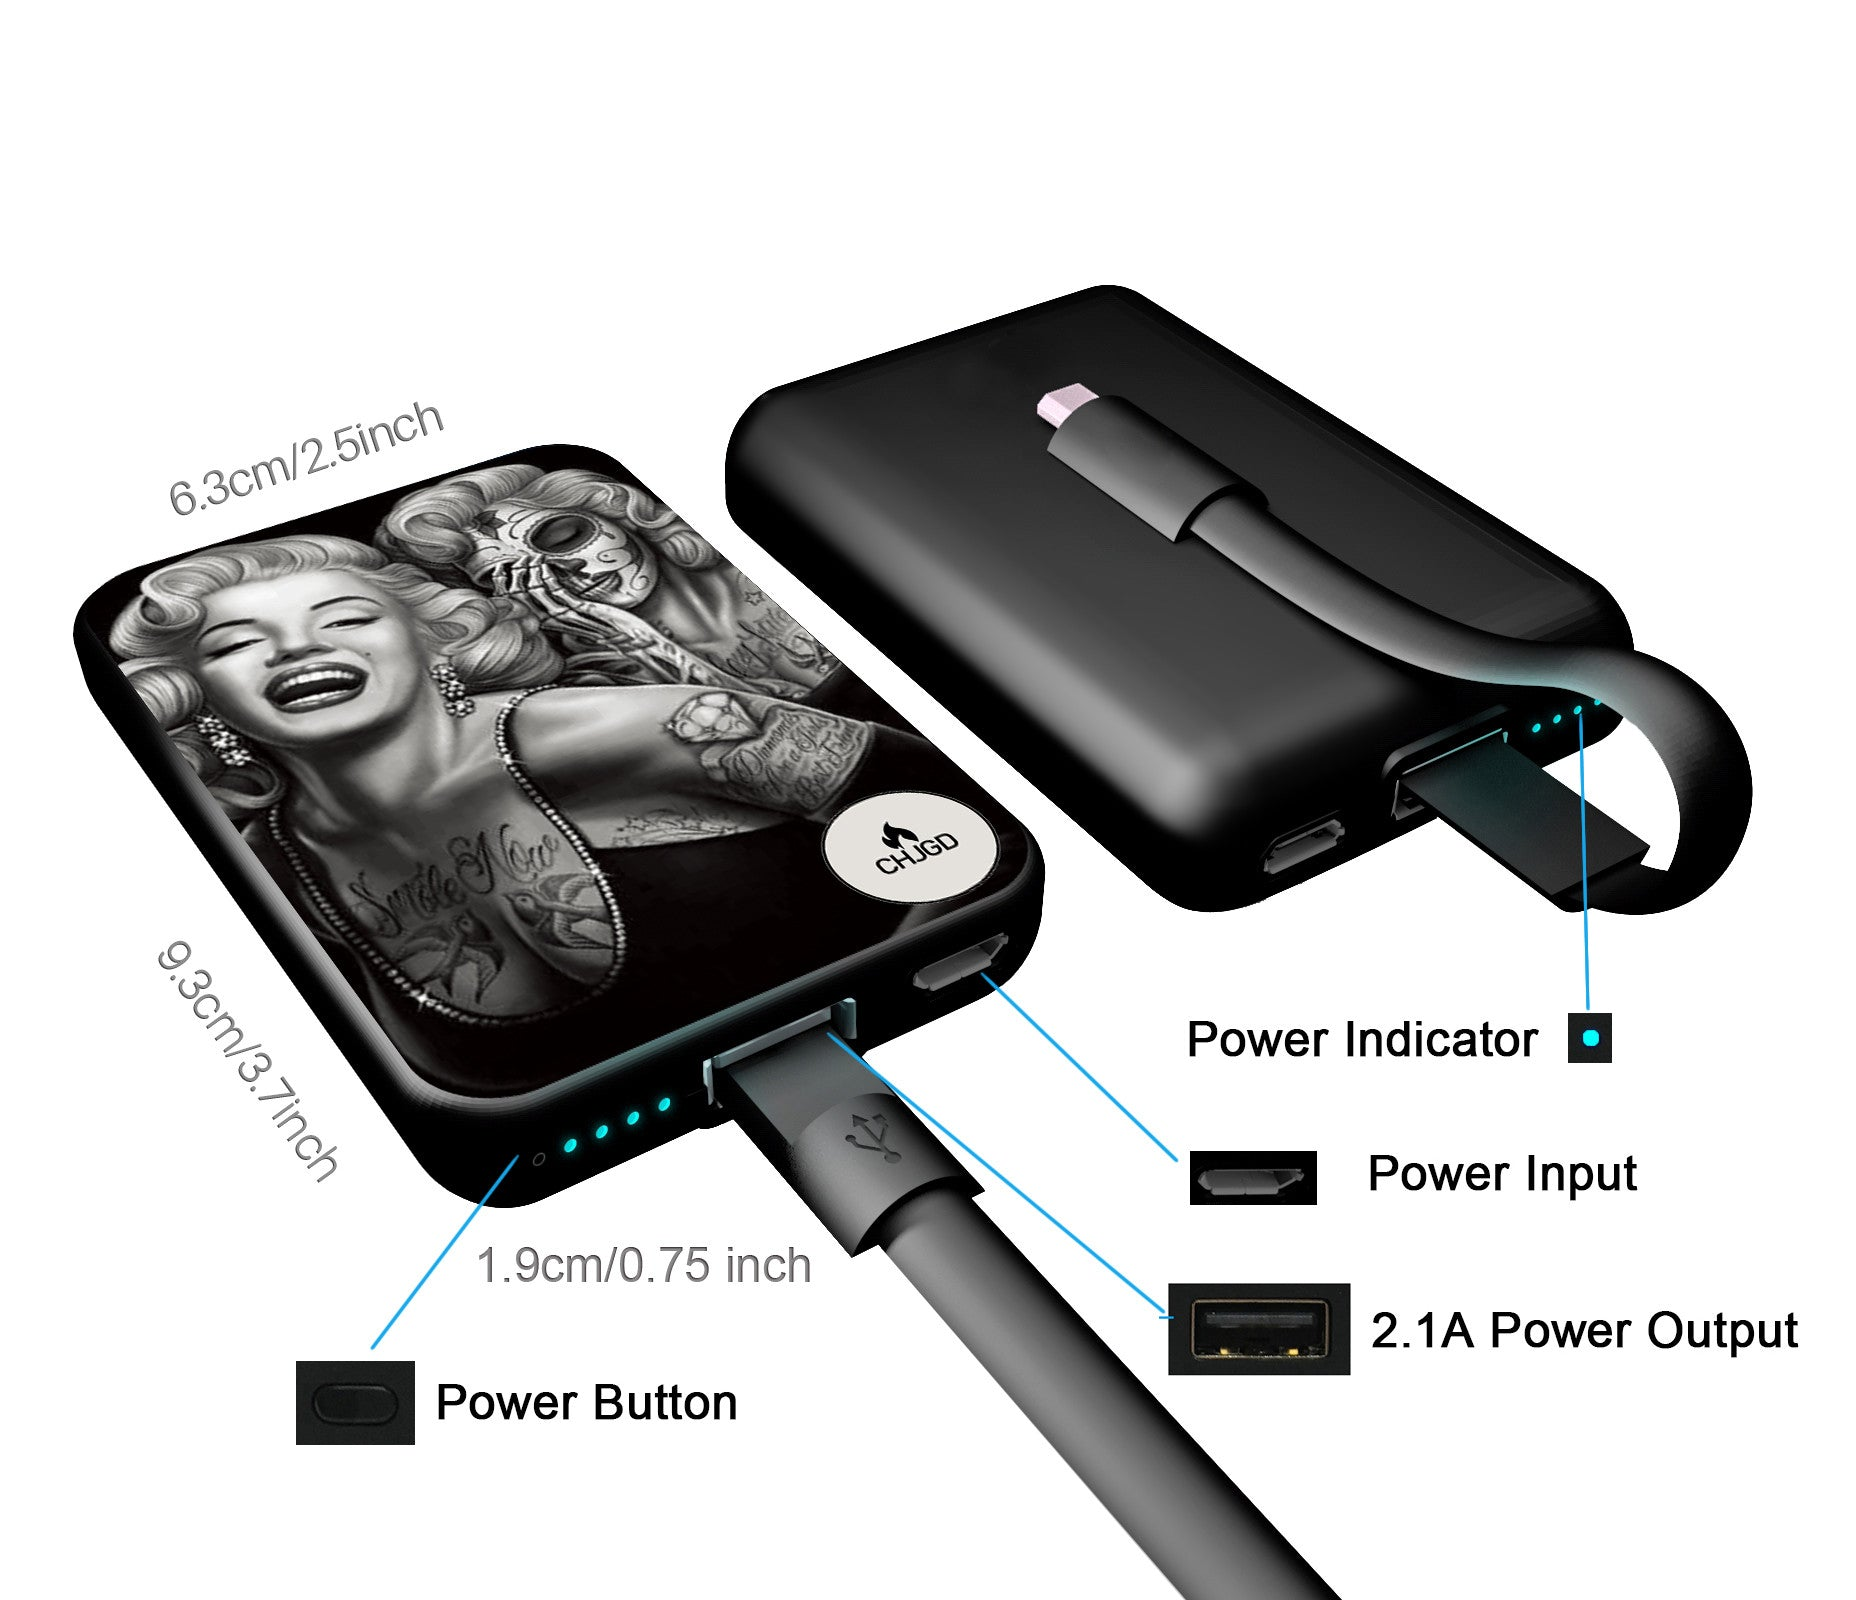 World's Smallest 10,000 mAh Power Bank - CHJGD Ultracompact (Marilyn Monroe) - CHARGEDPOWER.COM